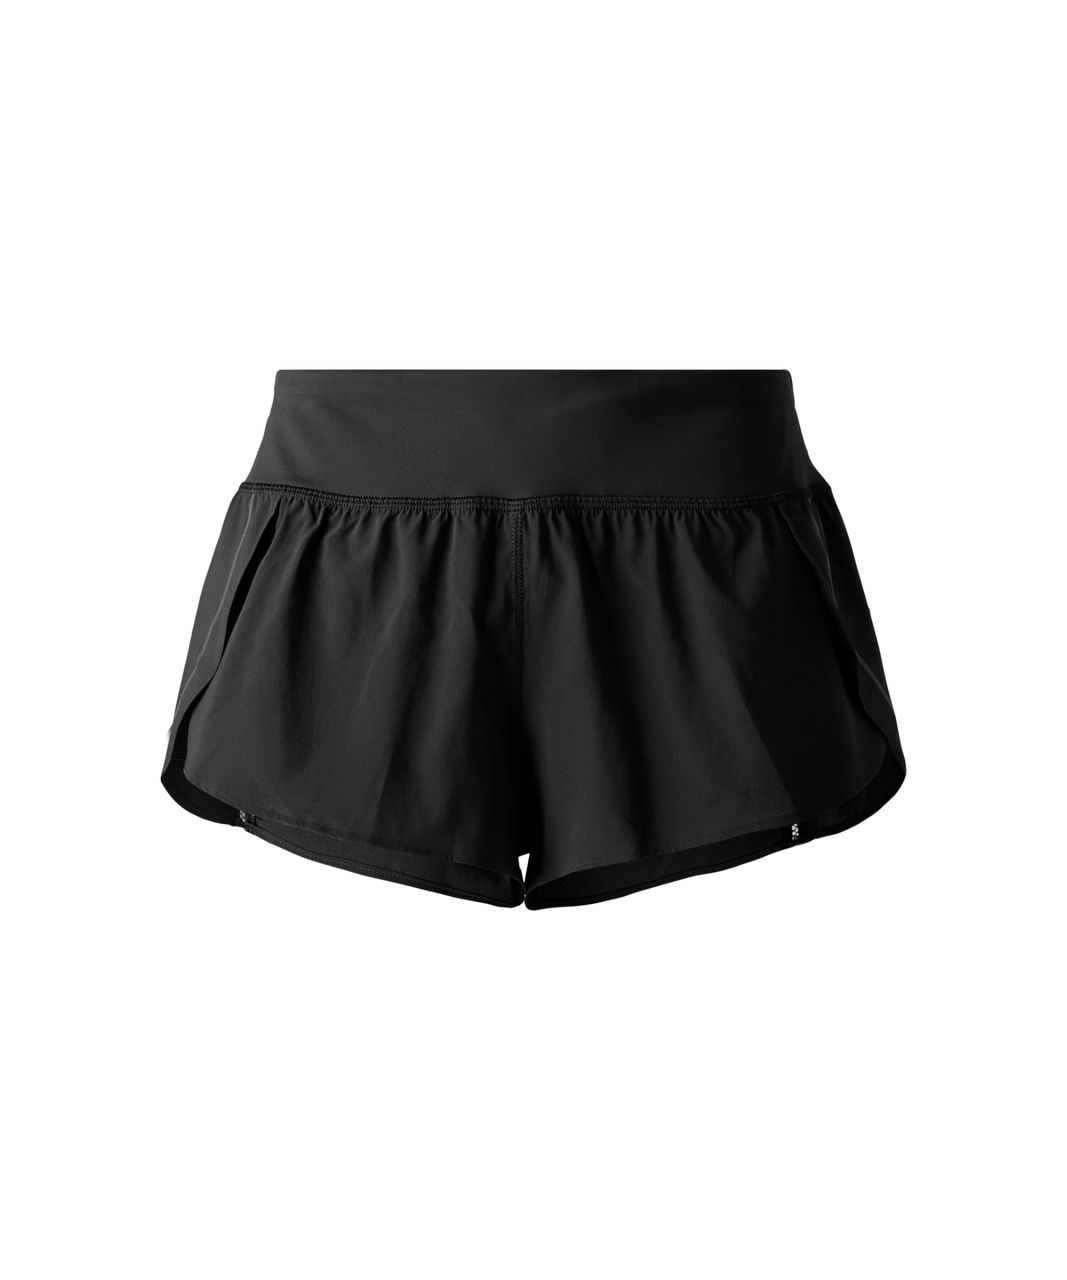 Lululemon Split Second Short II - Black